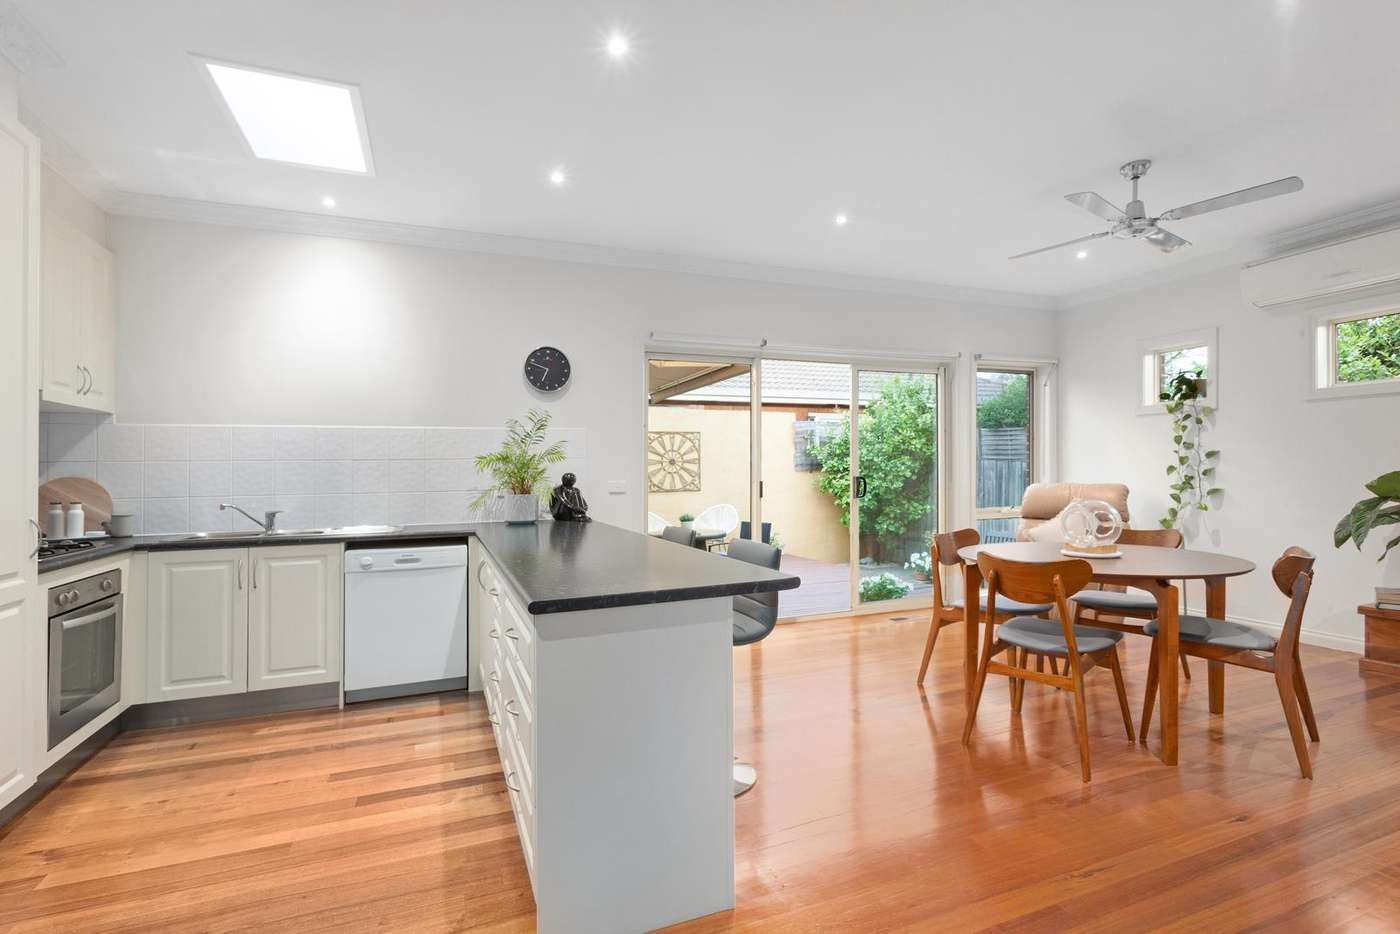 Fifth view of Homely unit listing, 39 Werder Street, Box Hill North VIC 3129